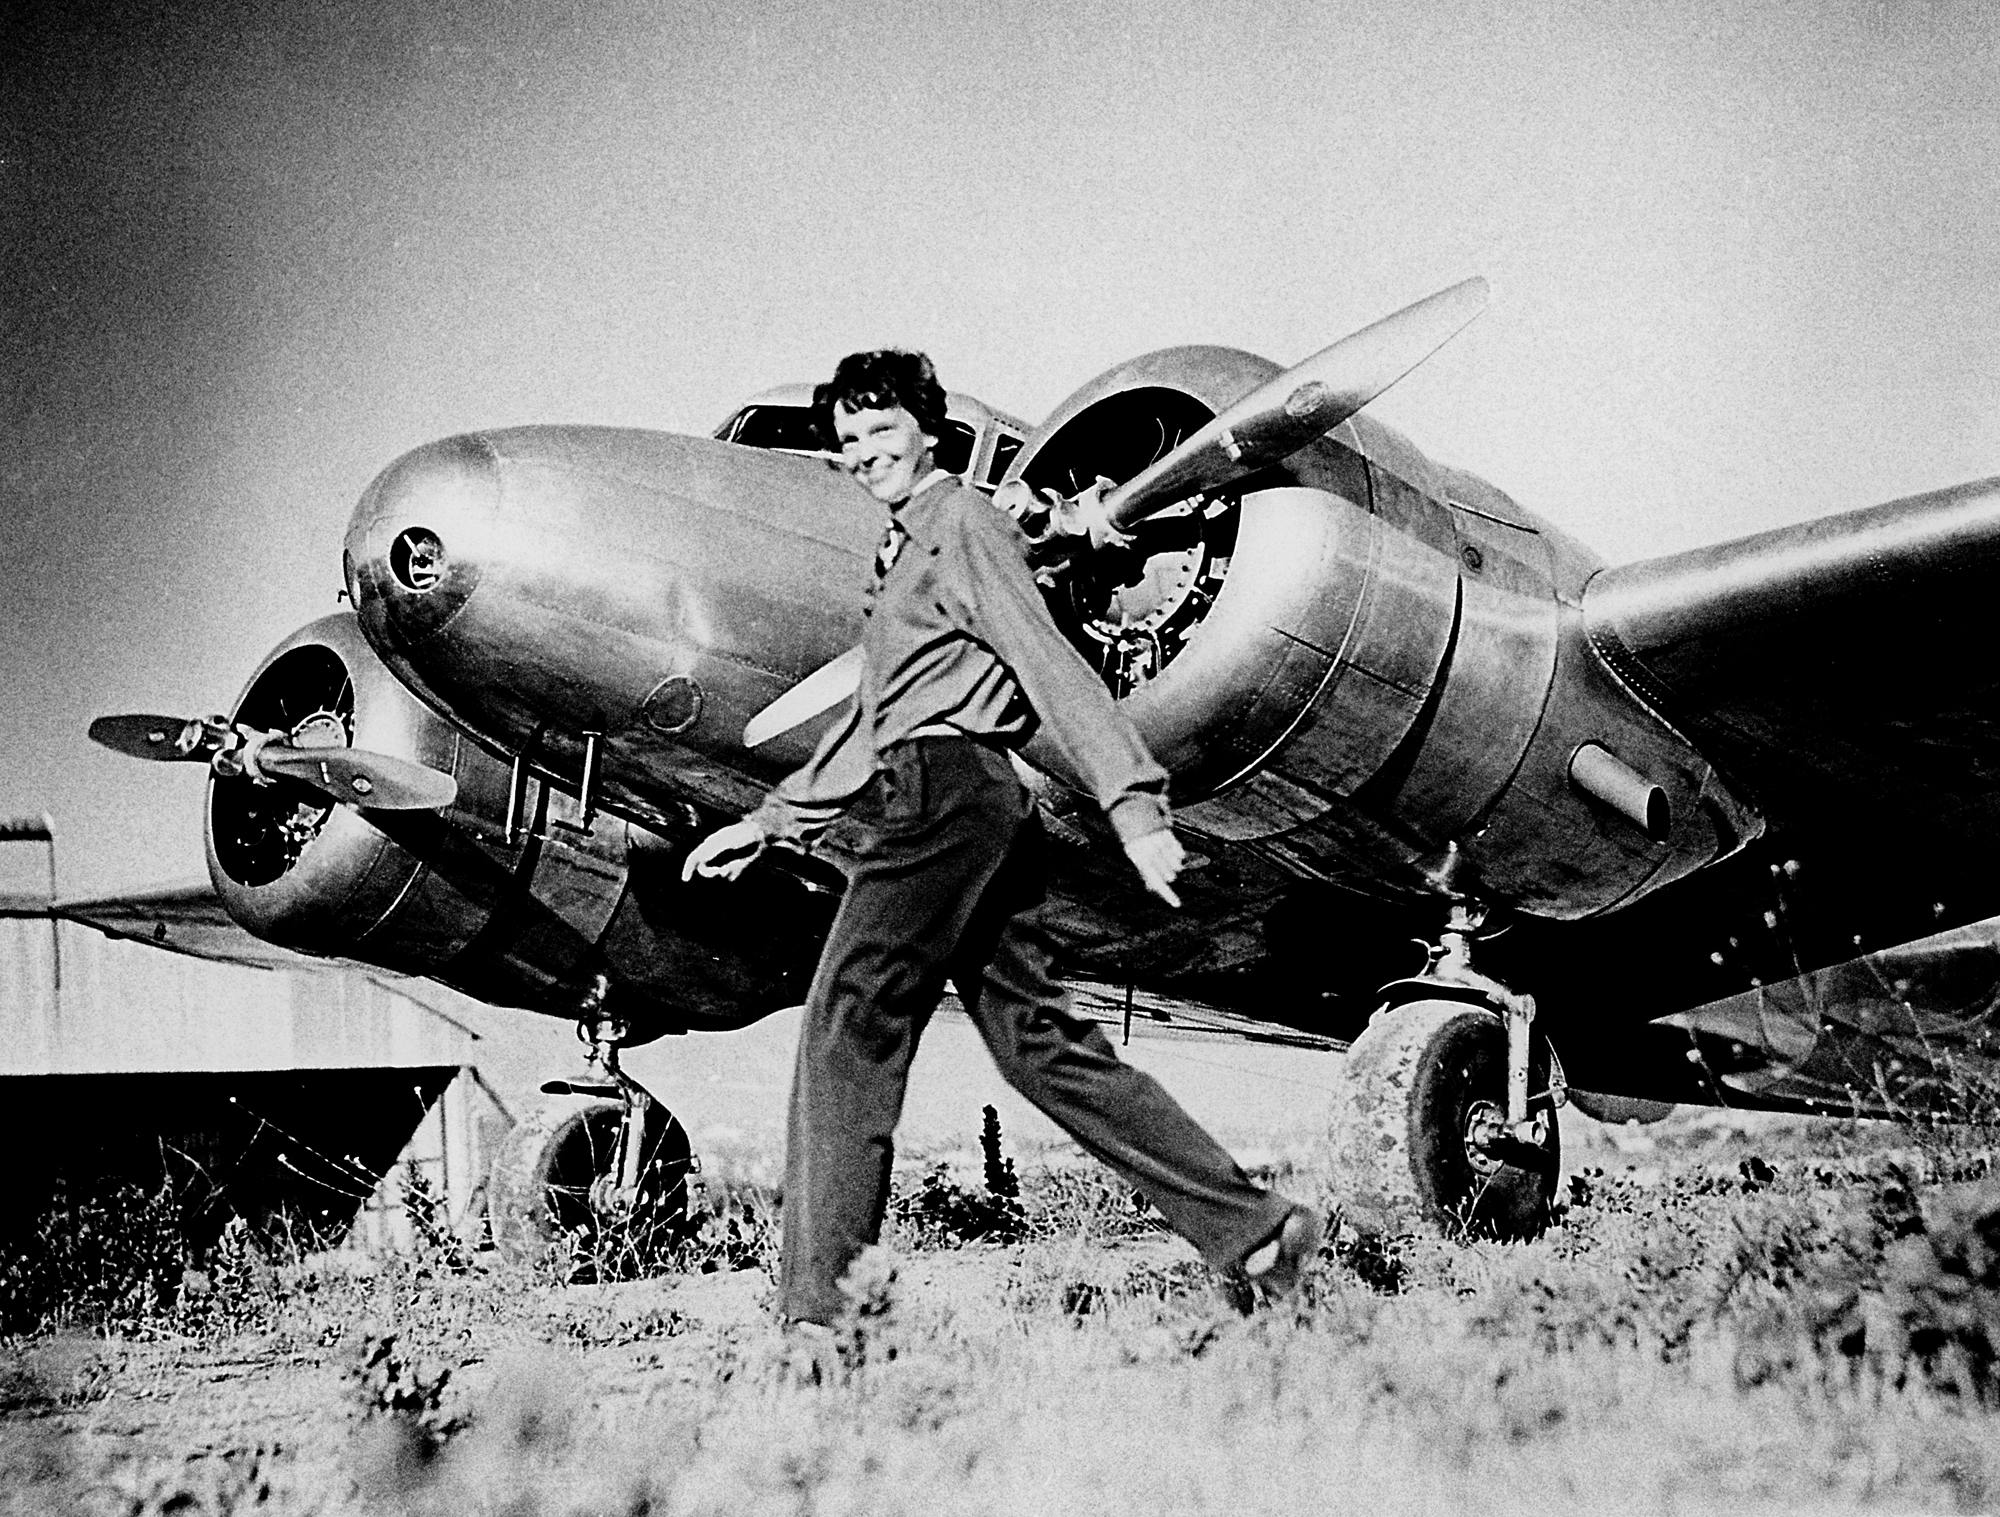 Location of Amelia Earhart's Wreck Still a Mystery